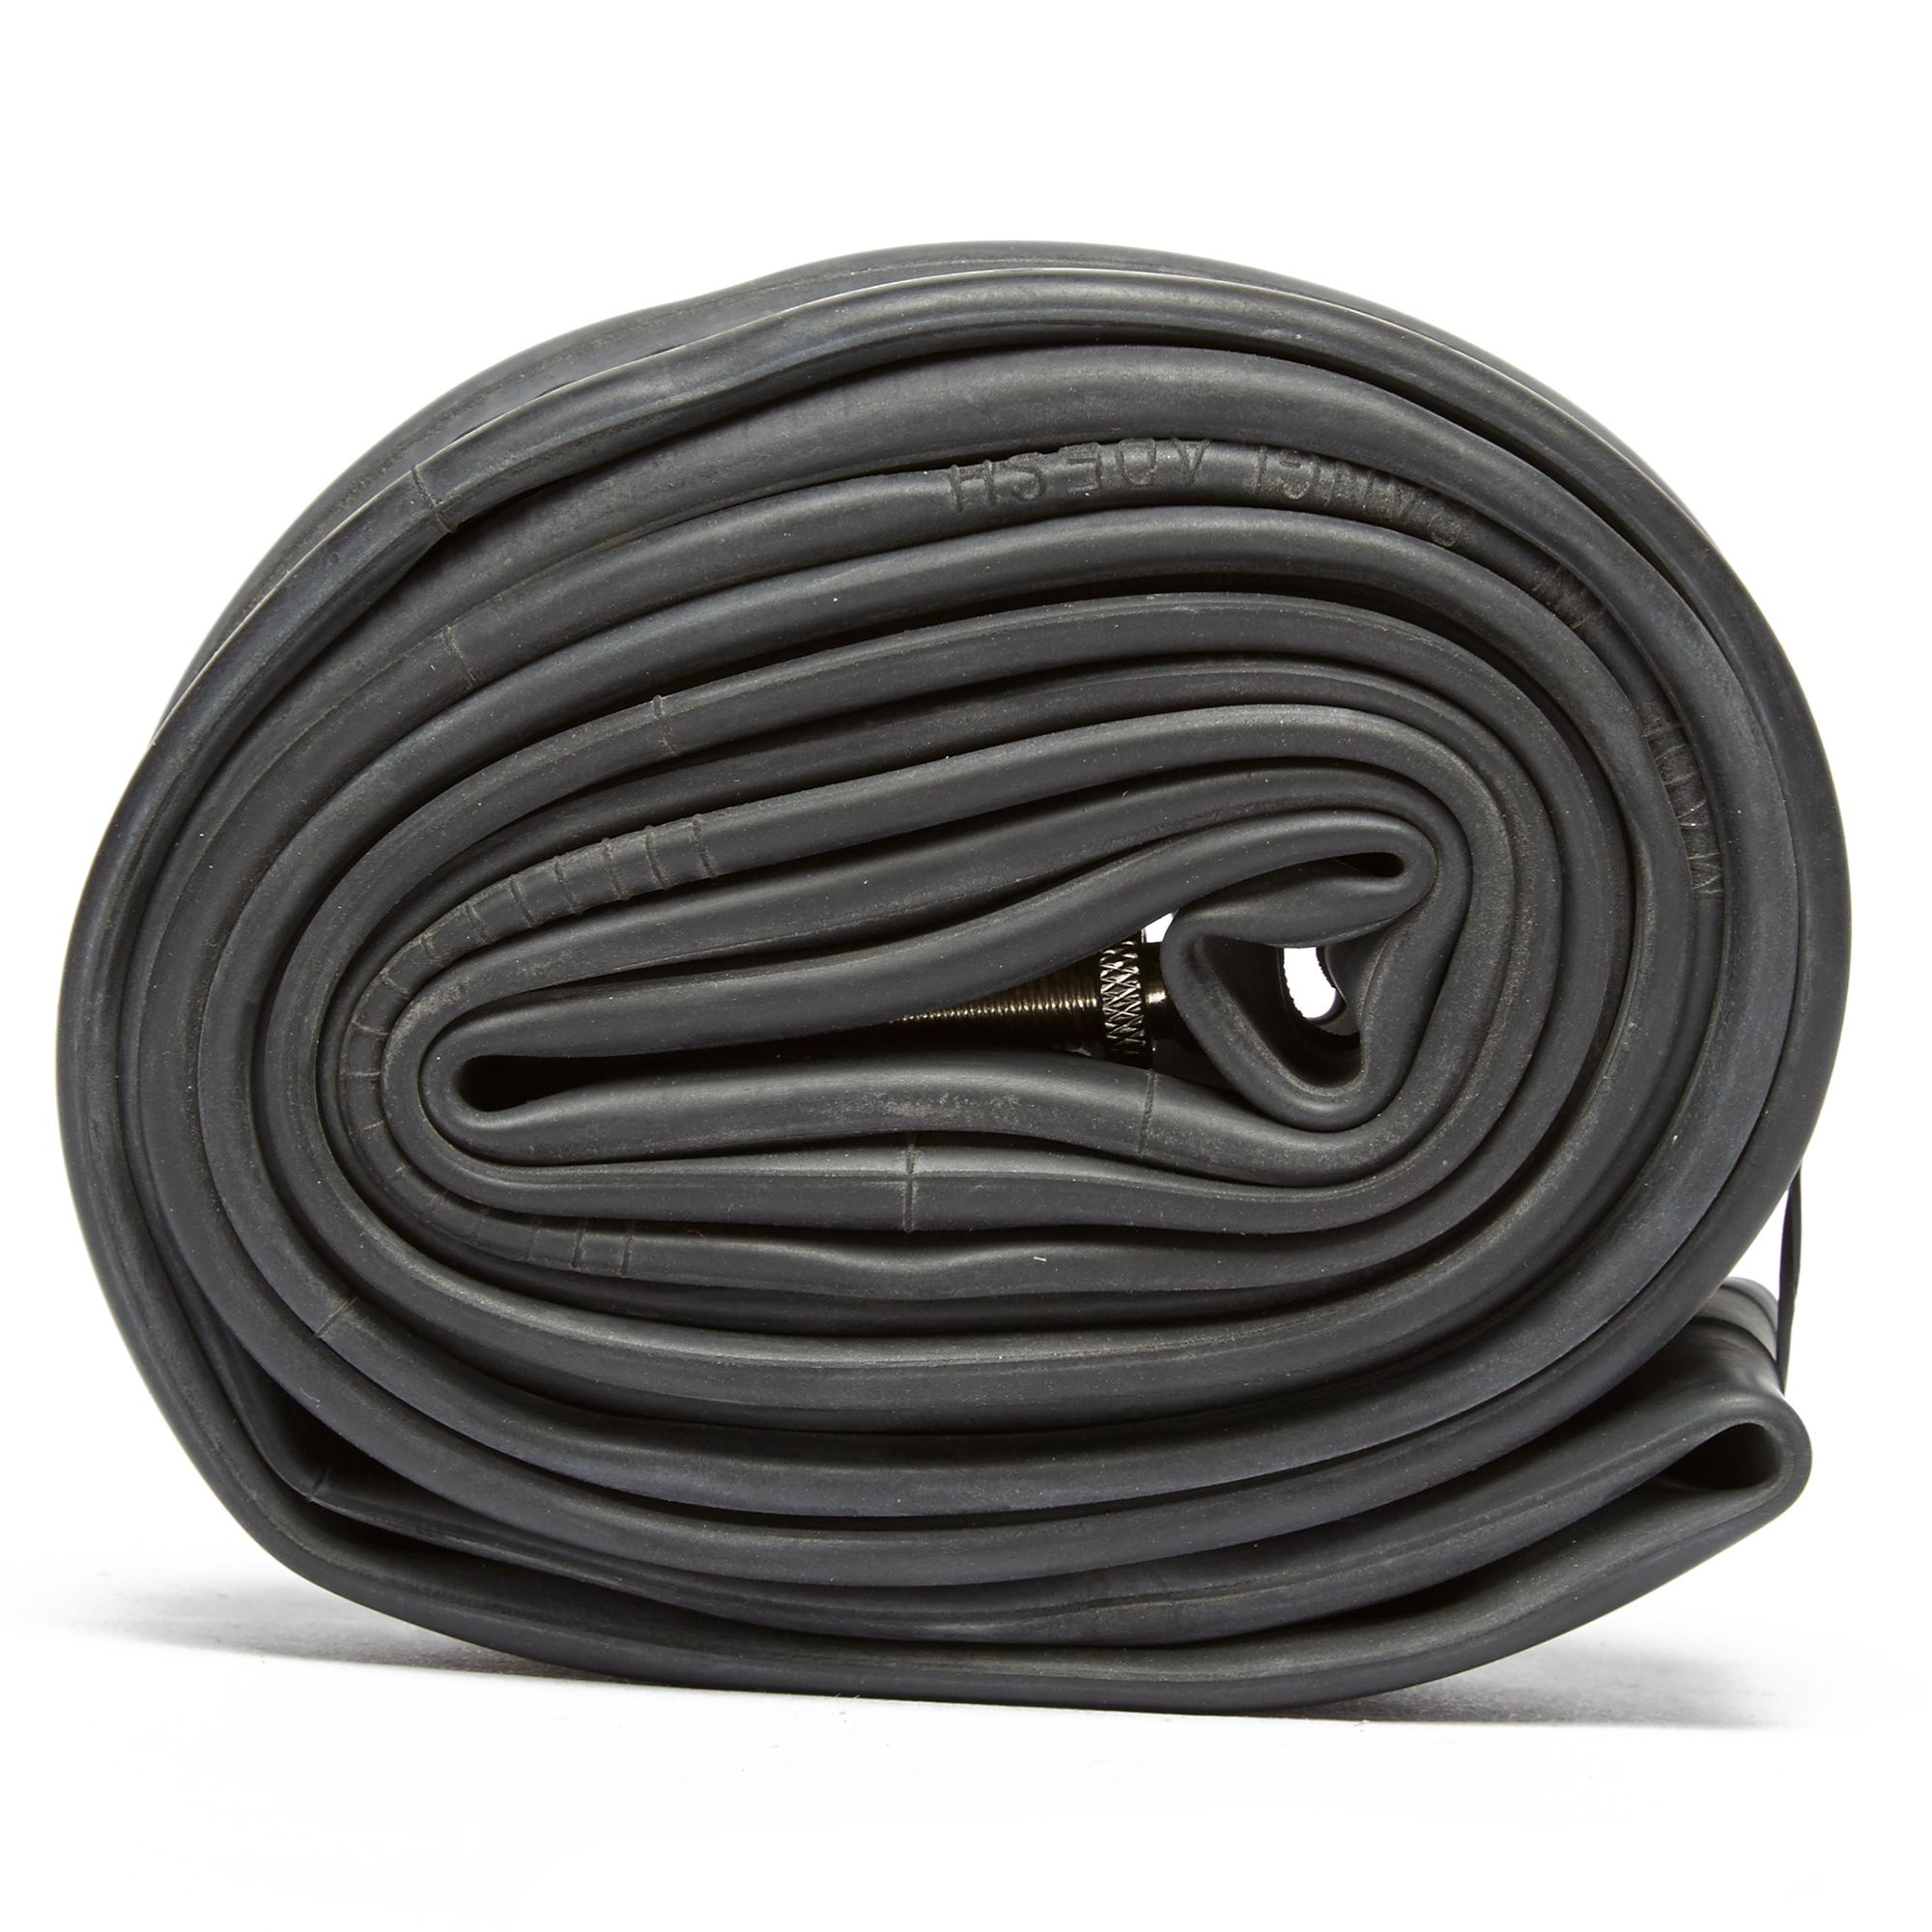 WILDTRACK 700c Presta Valve Inner Tube